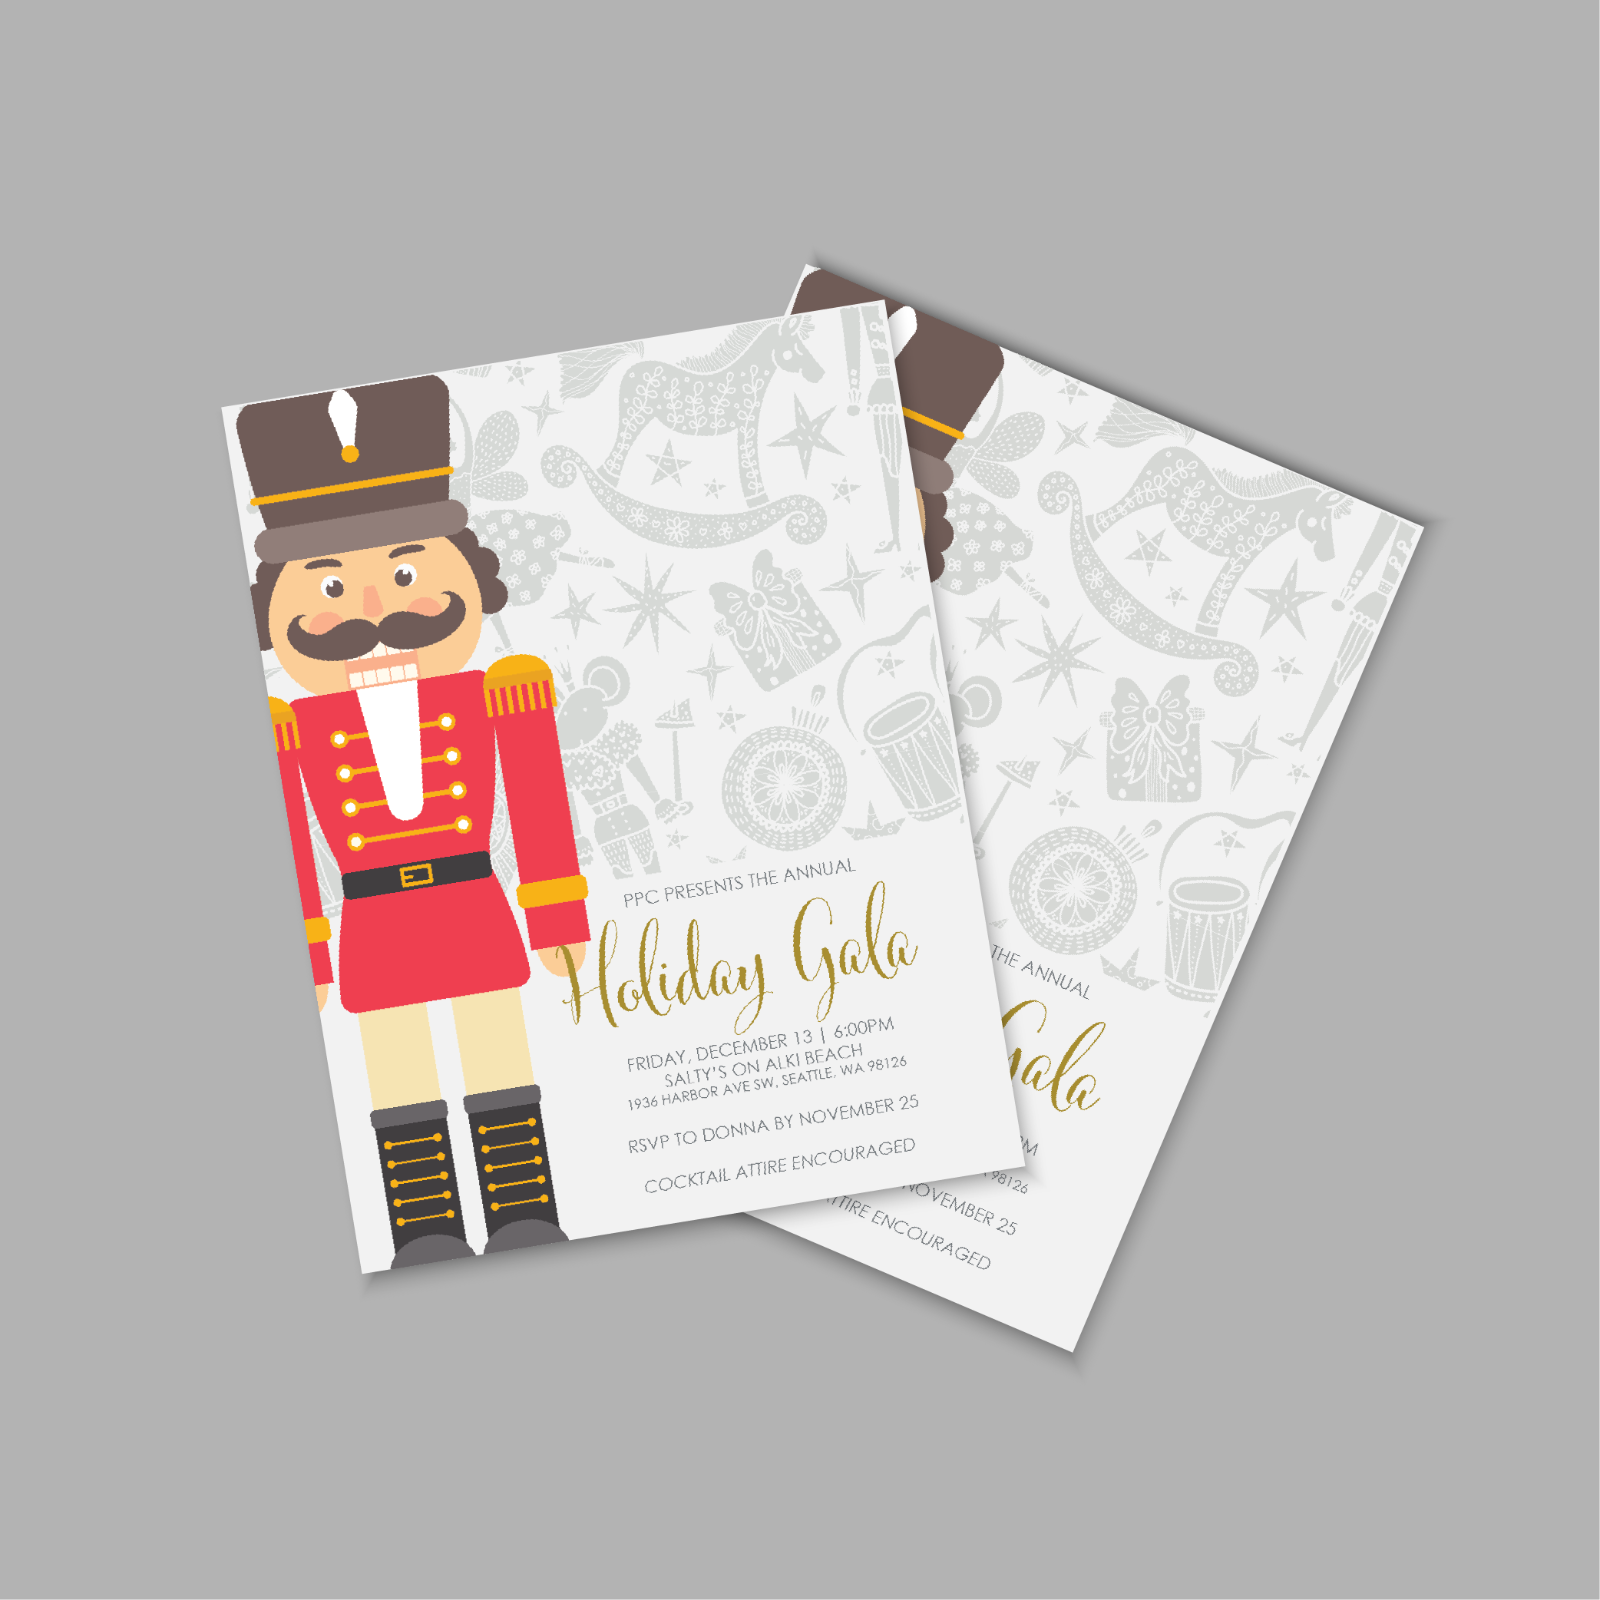 Print Design: Business Cards, Wedding, Special Events with Celene